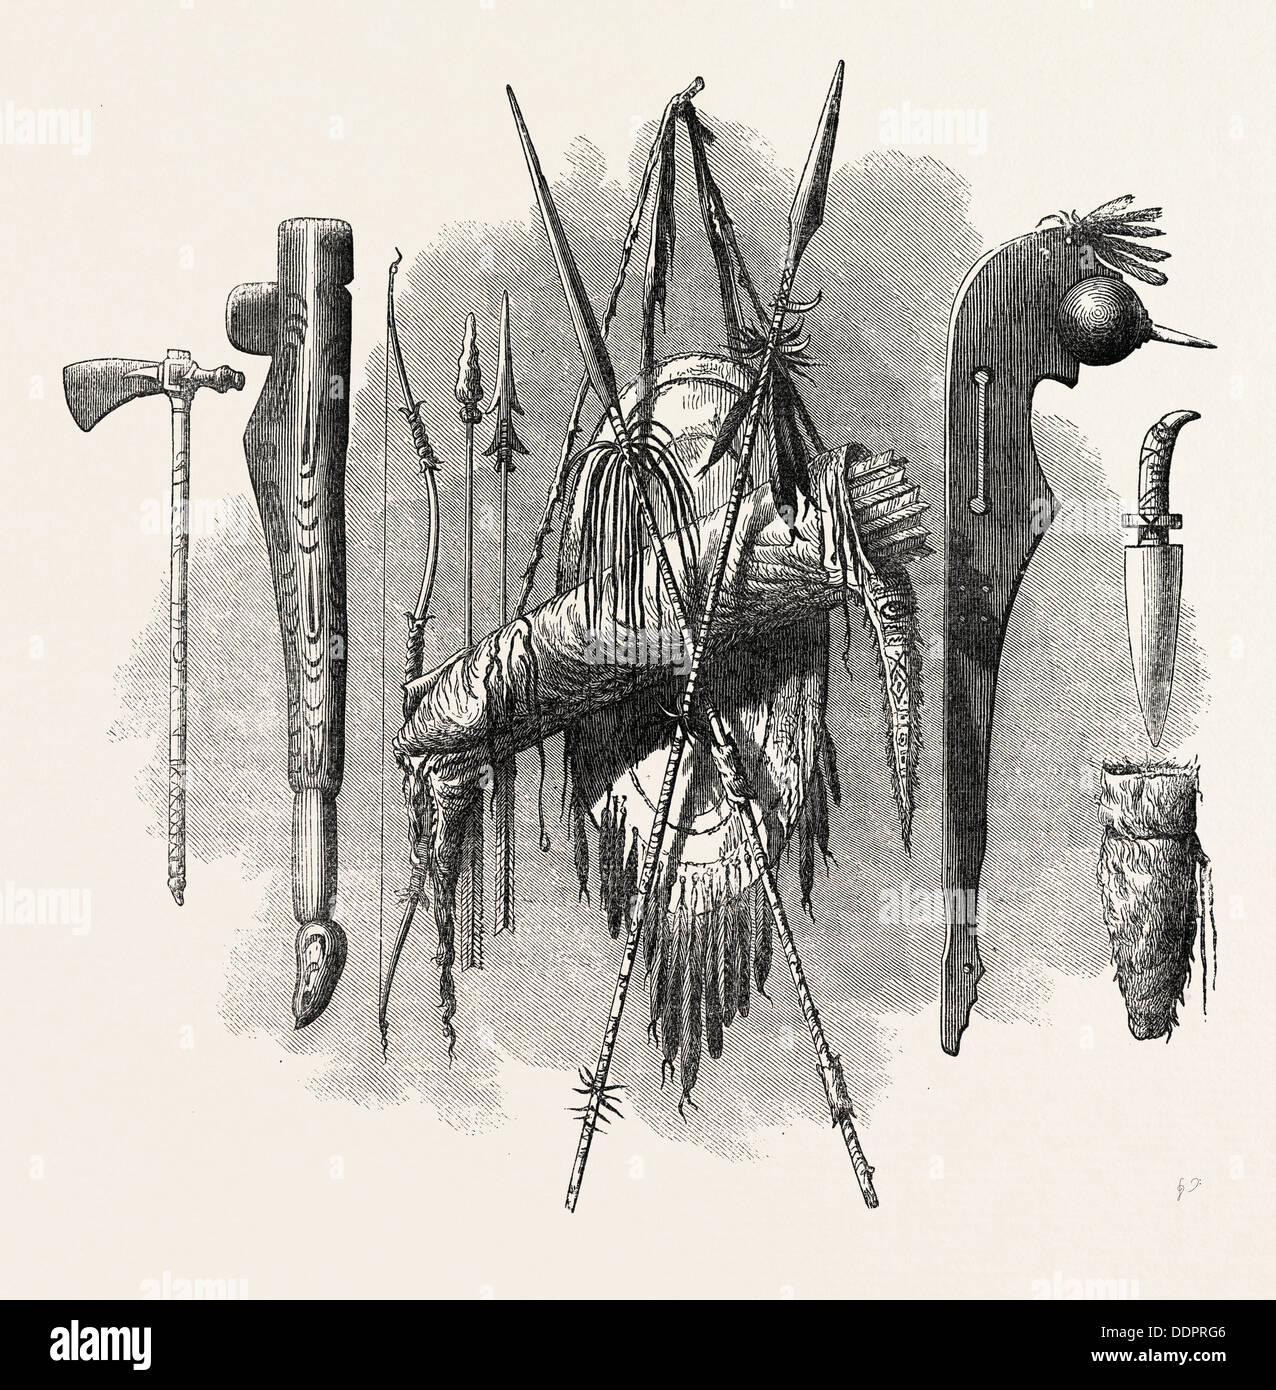 INDIAN WEAPONS; SPEAR, AXE, BOW AND ARROW, US, USA, 1870s engraving - Stock Image